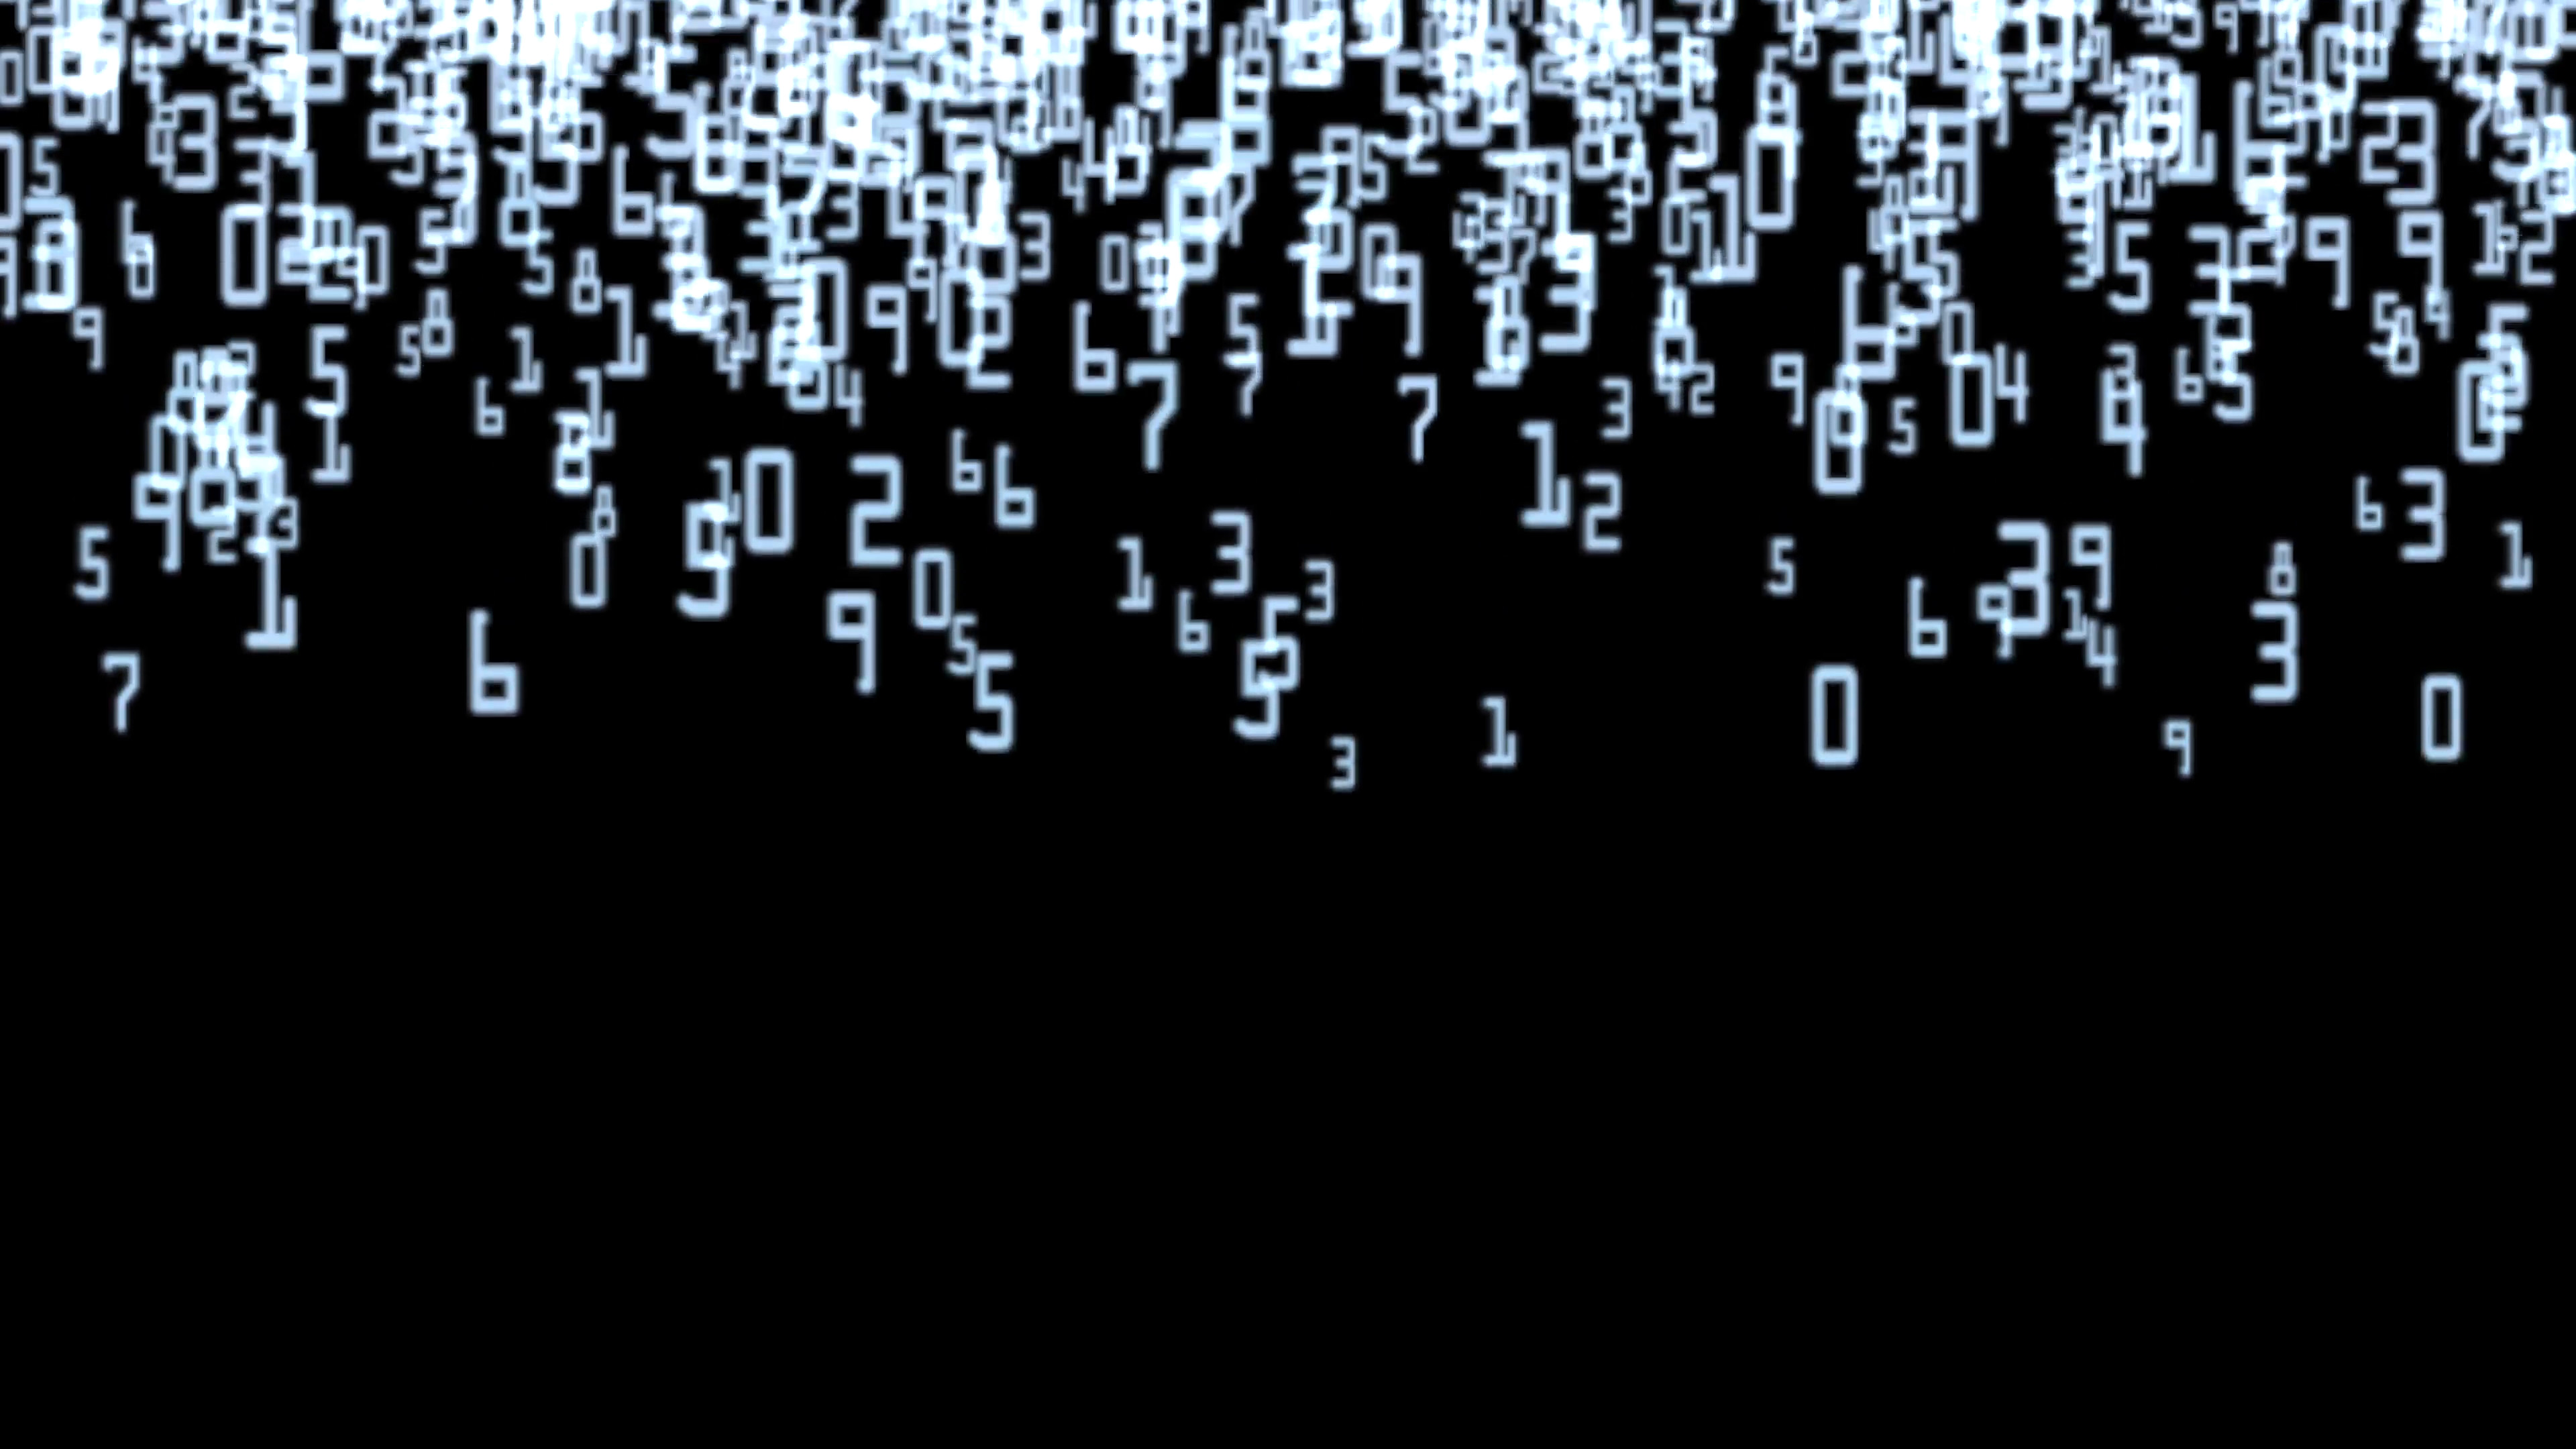 Matrix Falling Code Wallpaper Download Matrix Background 62 Pictures